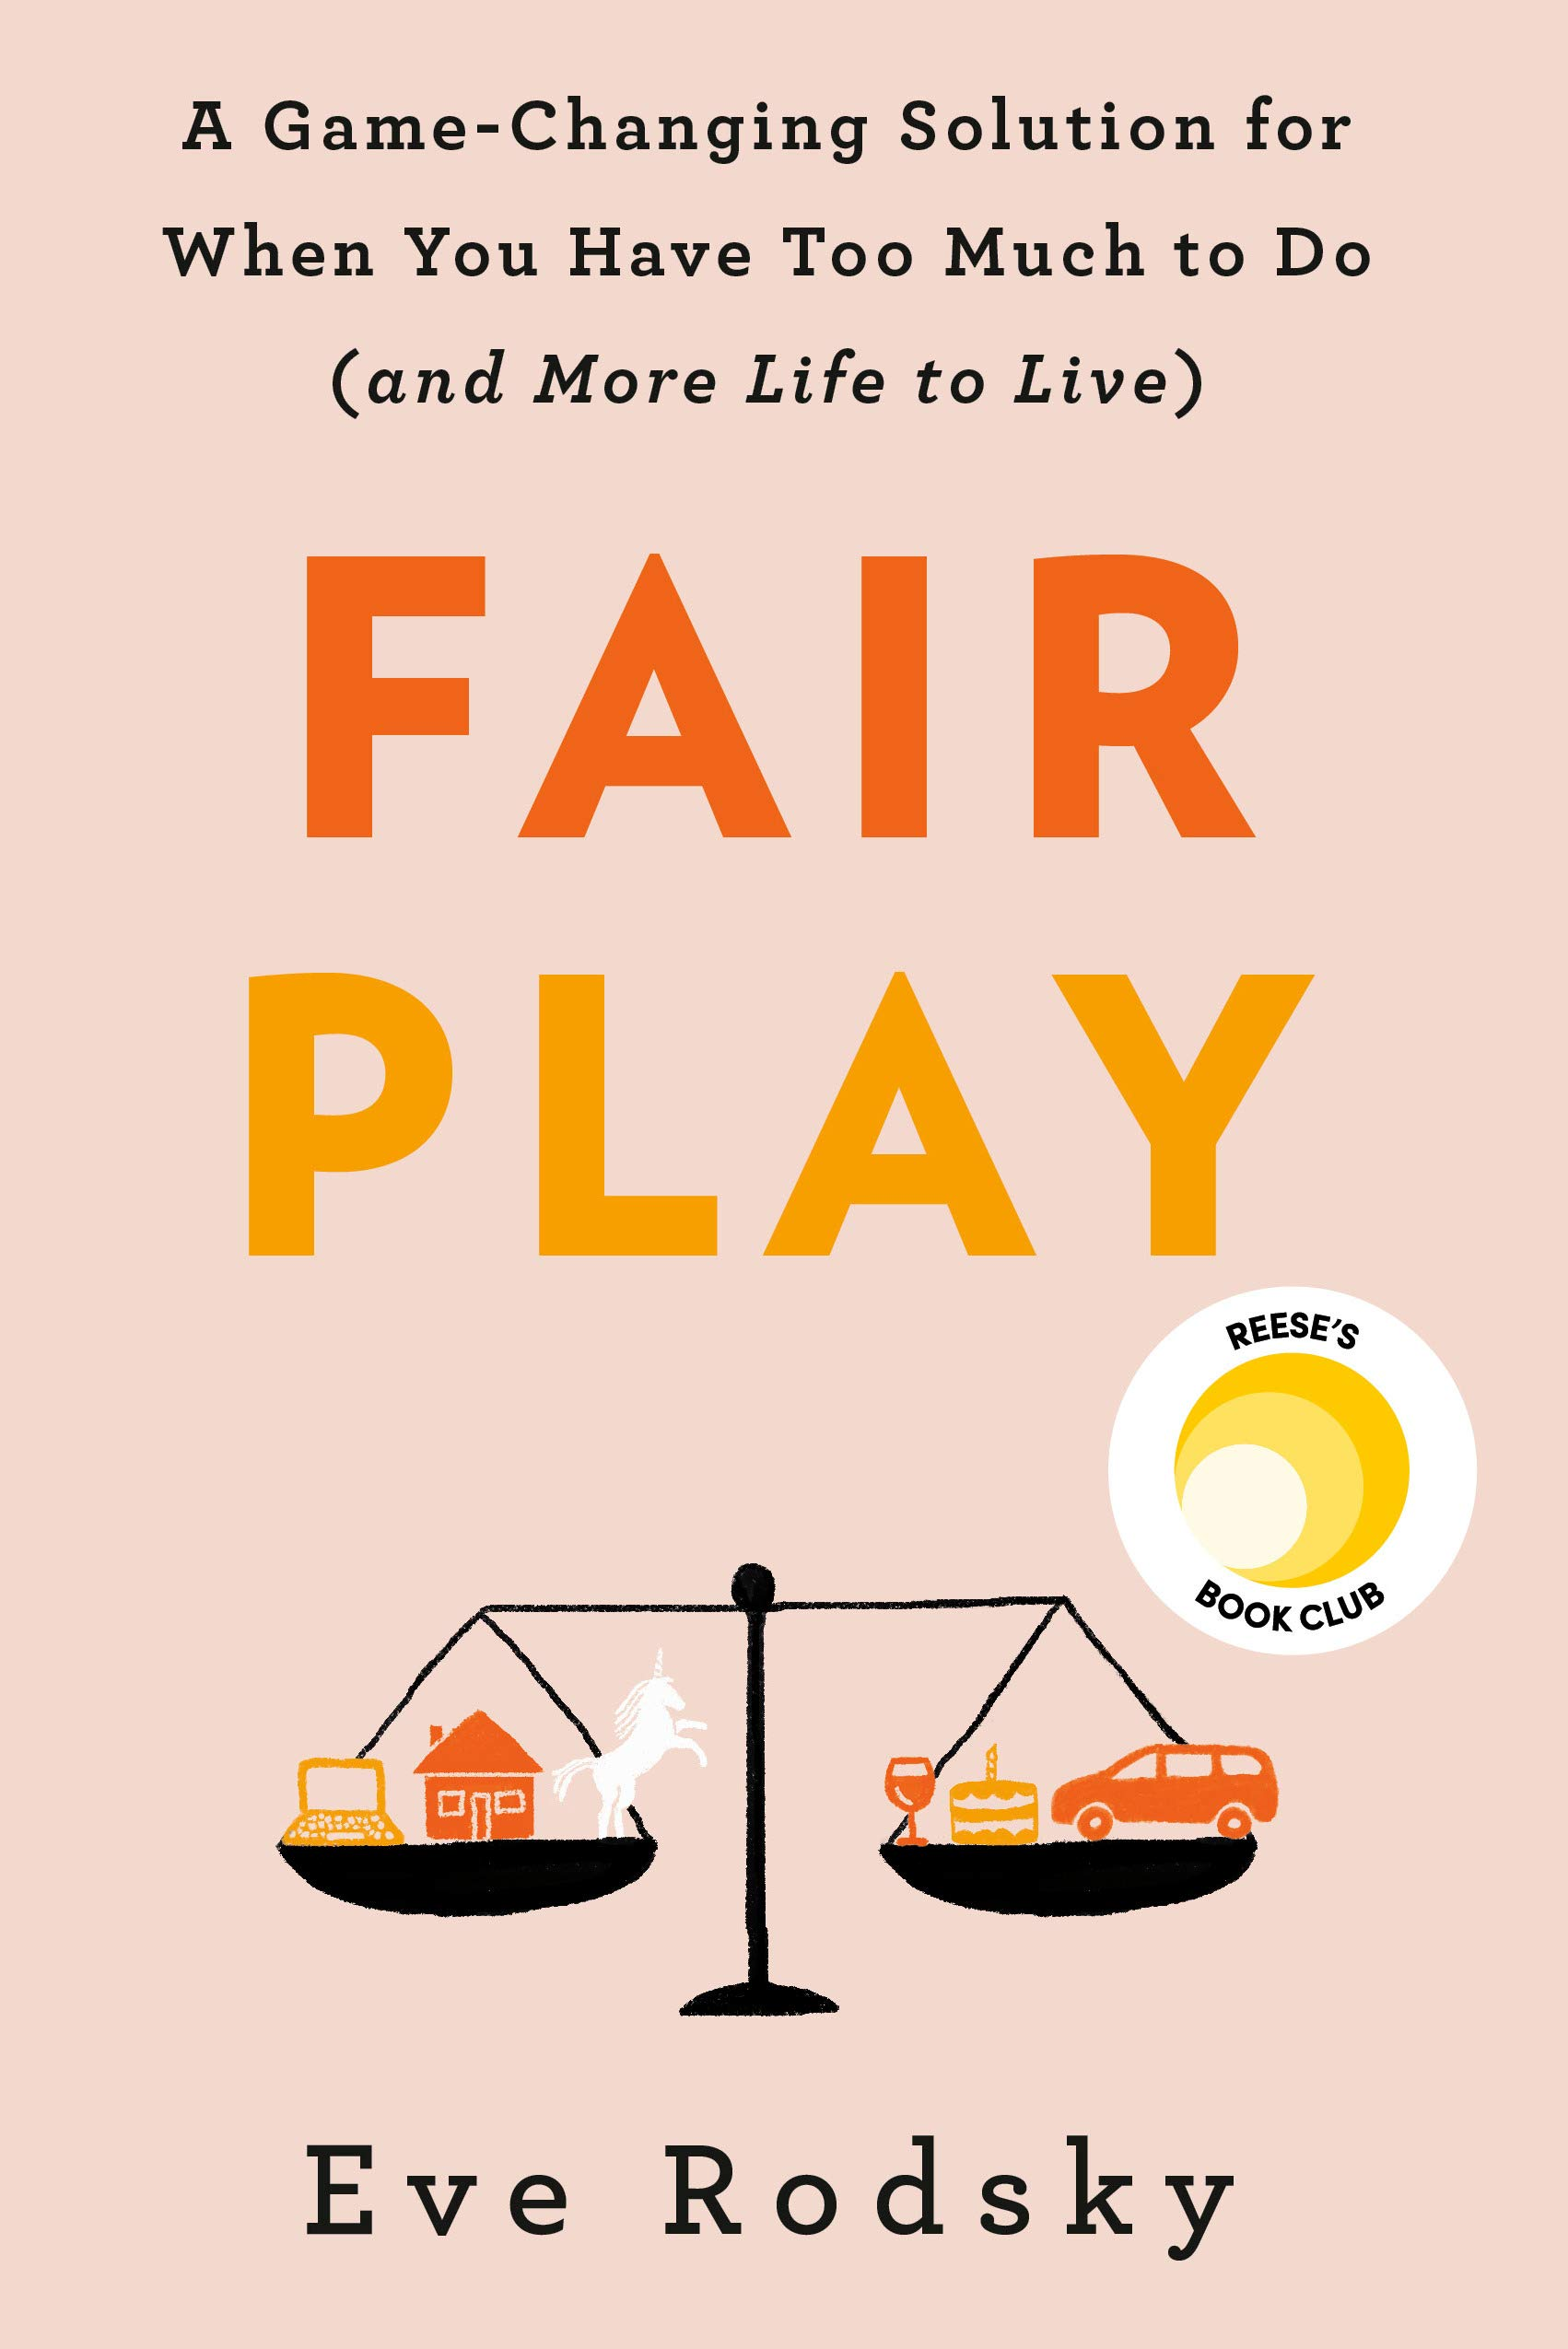 Fair Play: A Game-Changing Solution for When You Have Too Much to Do (and More Life to Live) by G.P. Putnam's Sons